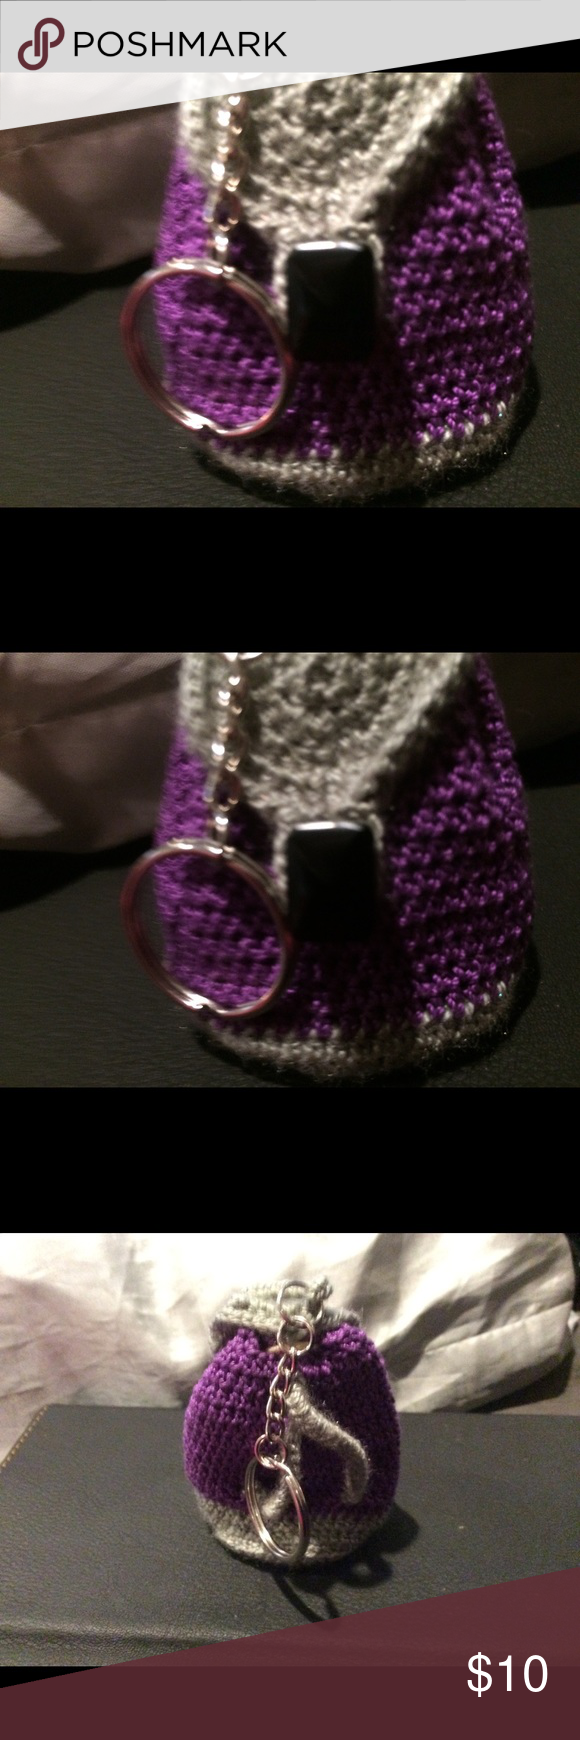 Hand crocheted backpack keychain Great for gifting money! Approximately 3 inches tall and 2 inches wide.  Opens to hold small items. Jewelry #crochetformoney